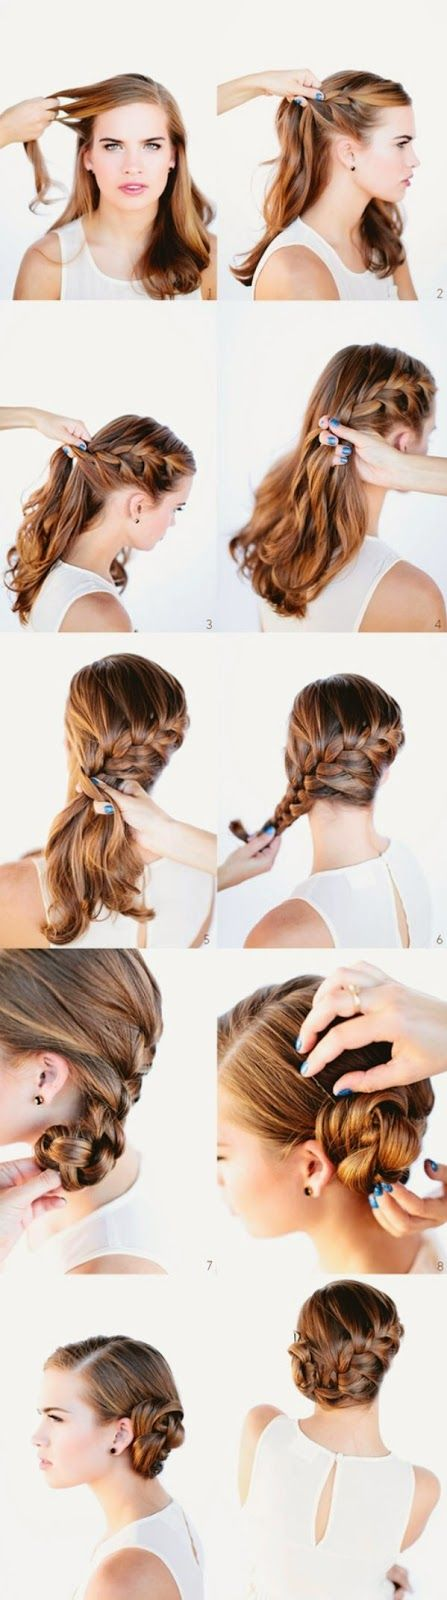 French braid into a bun step by step tutorial. Starting the Side French Braid. Grab a section from...